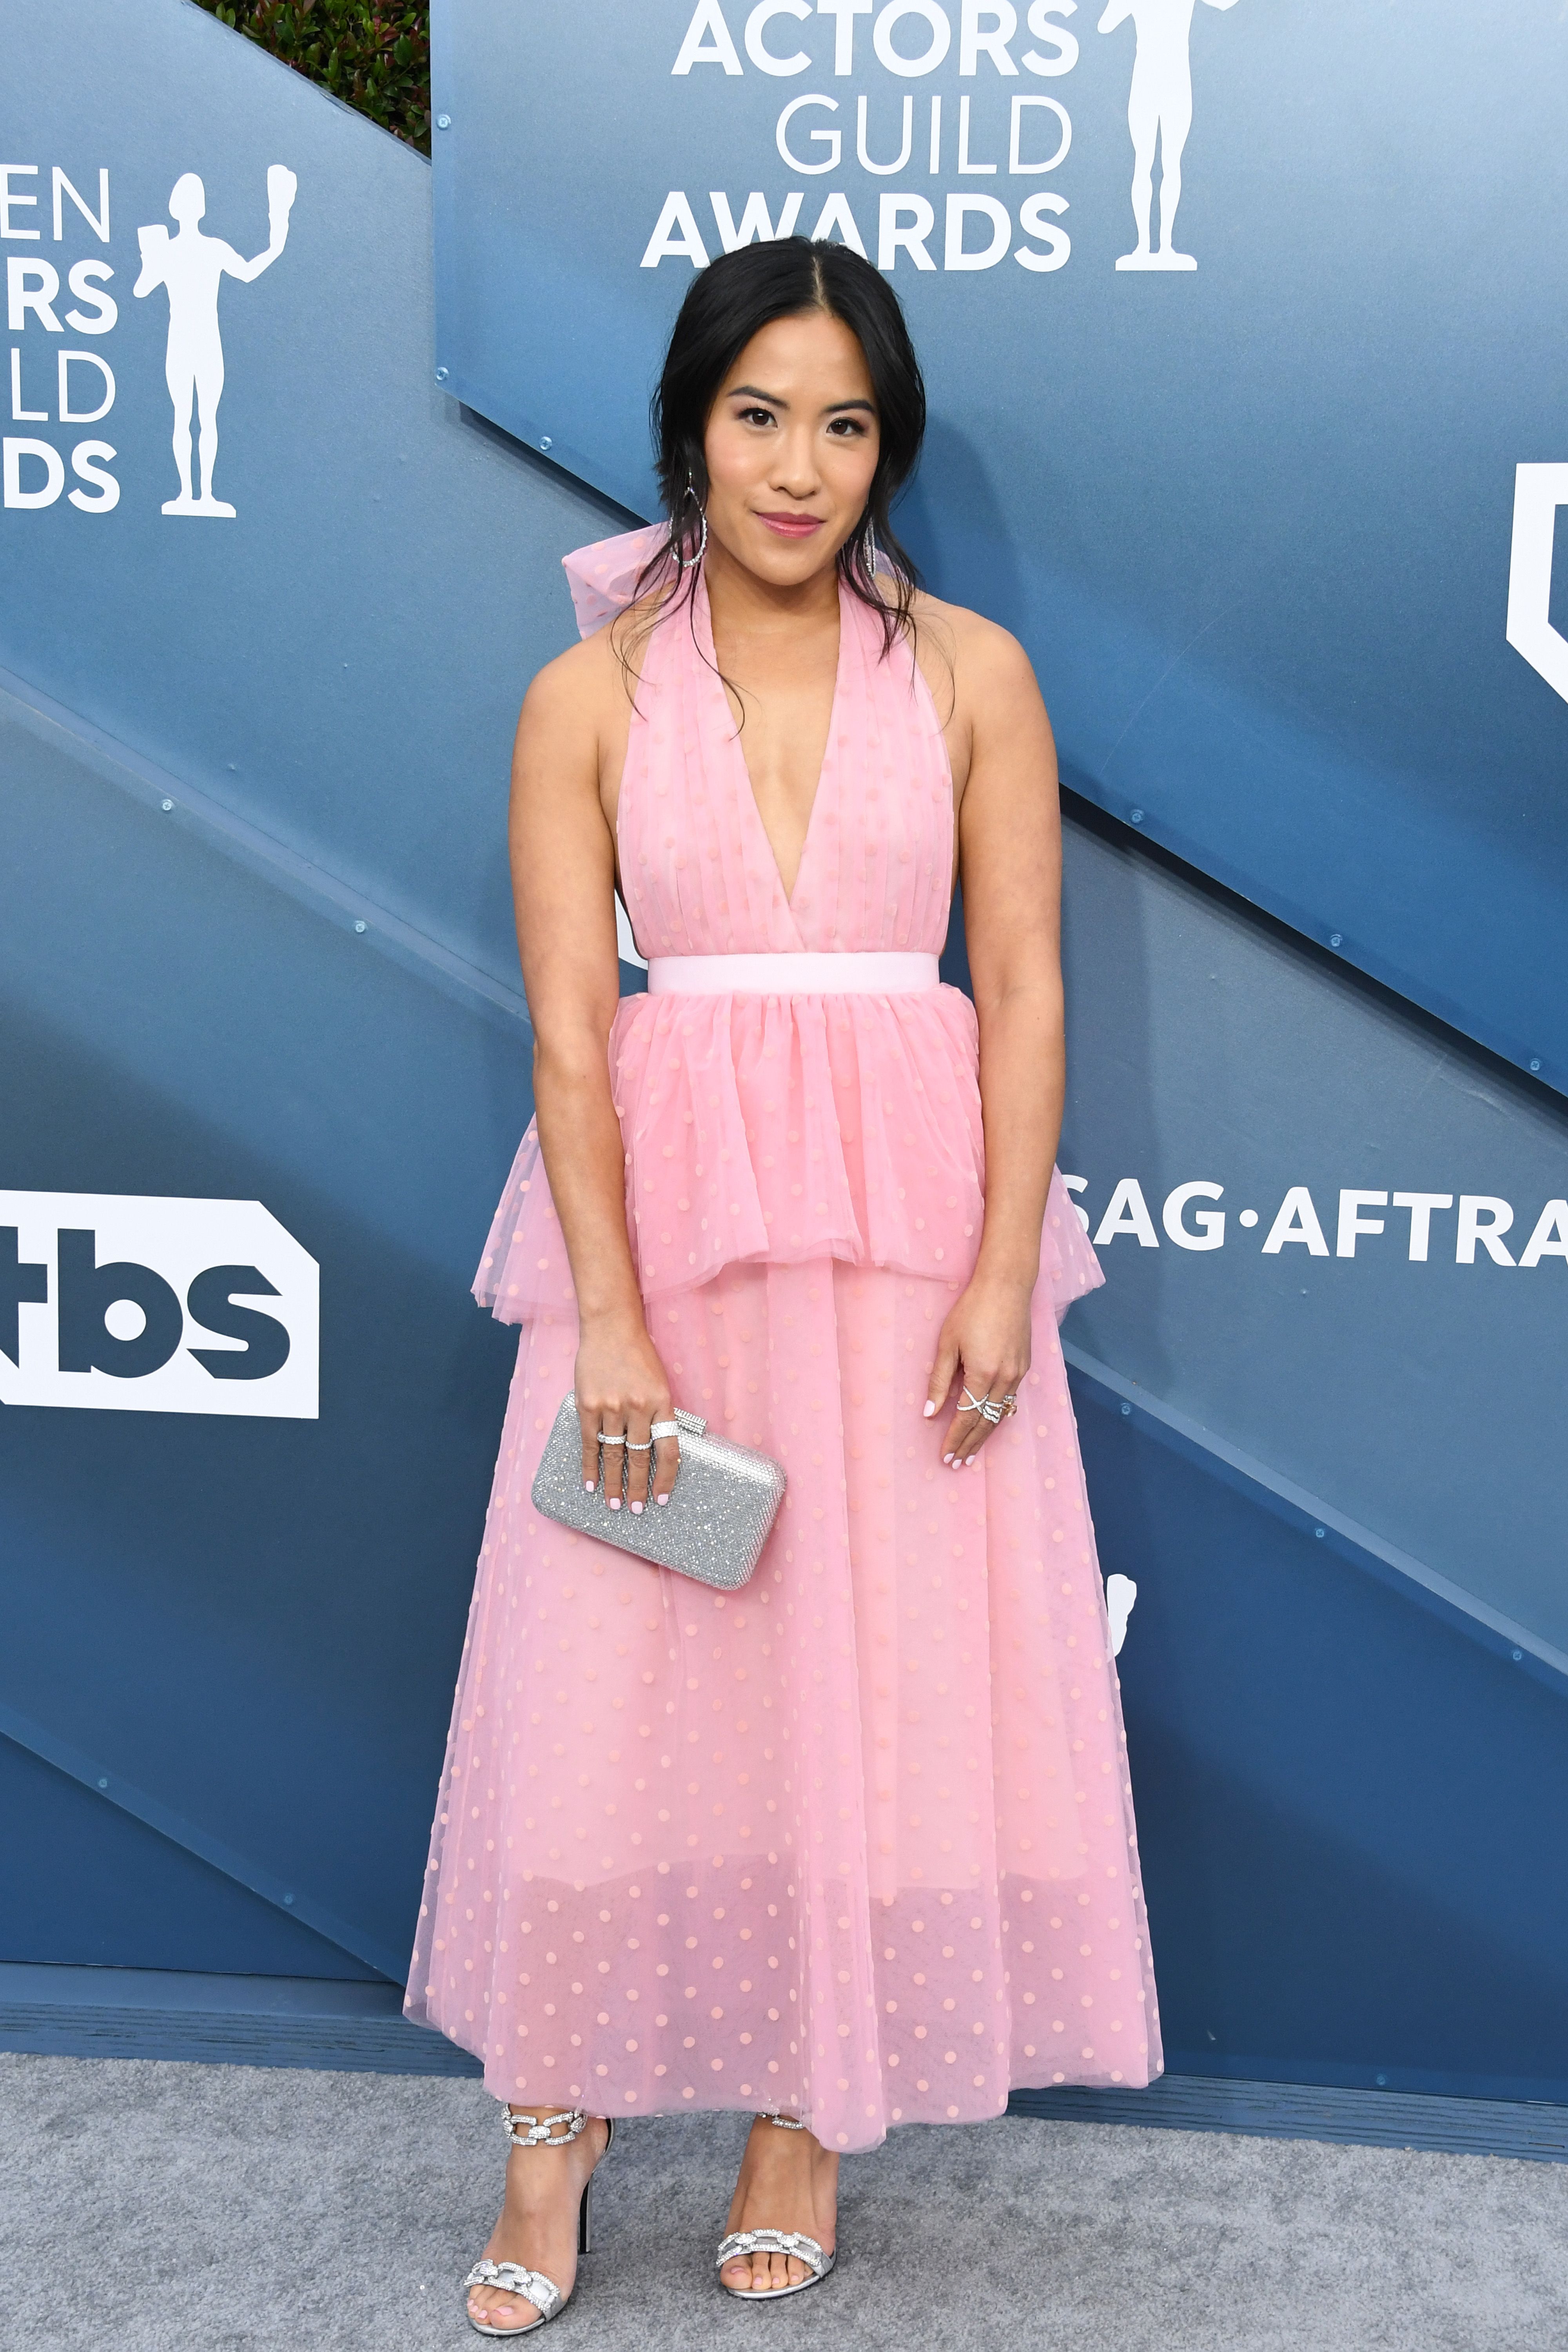 LOS ANGELES, CALIFORNIA - JANUARY 19: Melissa Tang attends the 26th Annual Screen ActorsGuild Awards at The Shrine Auditorium on January 19, 2020 in Los Angeles, California. (Photo by Jon Kopaloff/Getty Images)